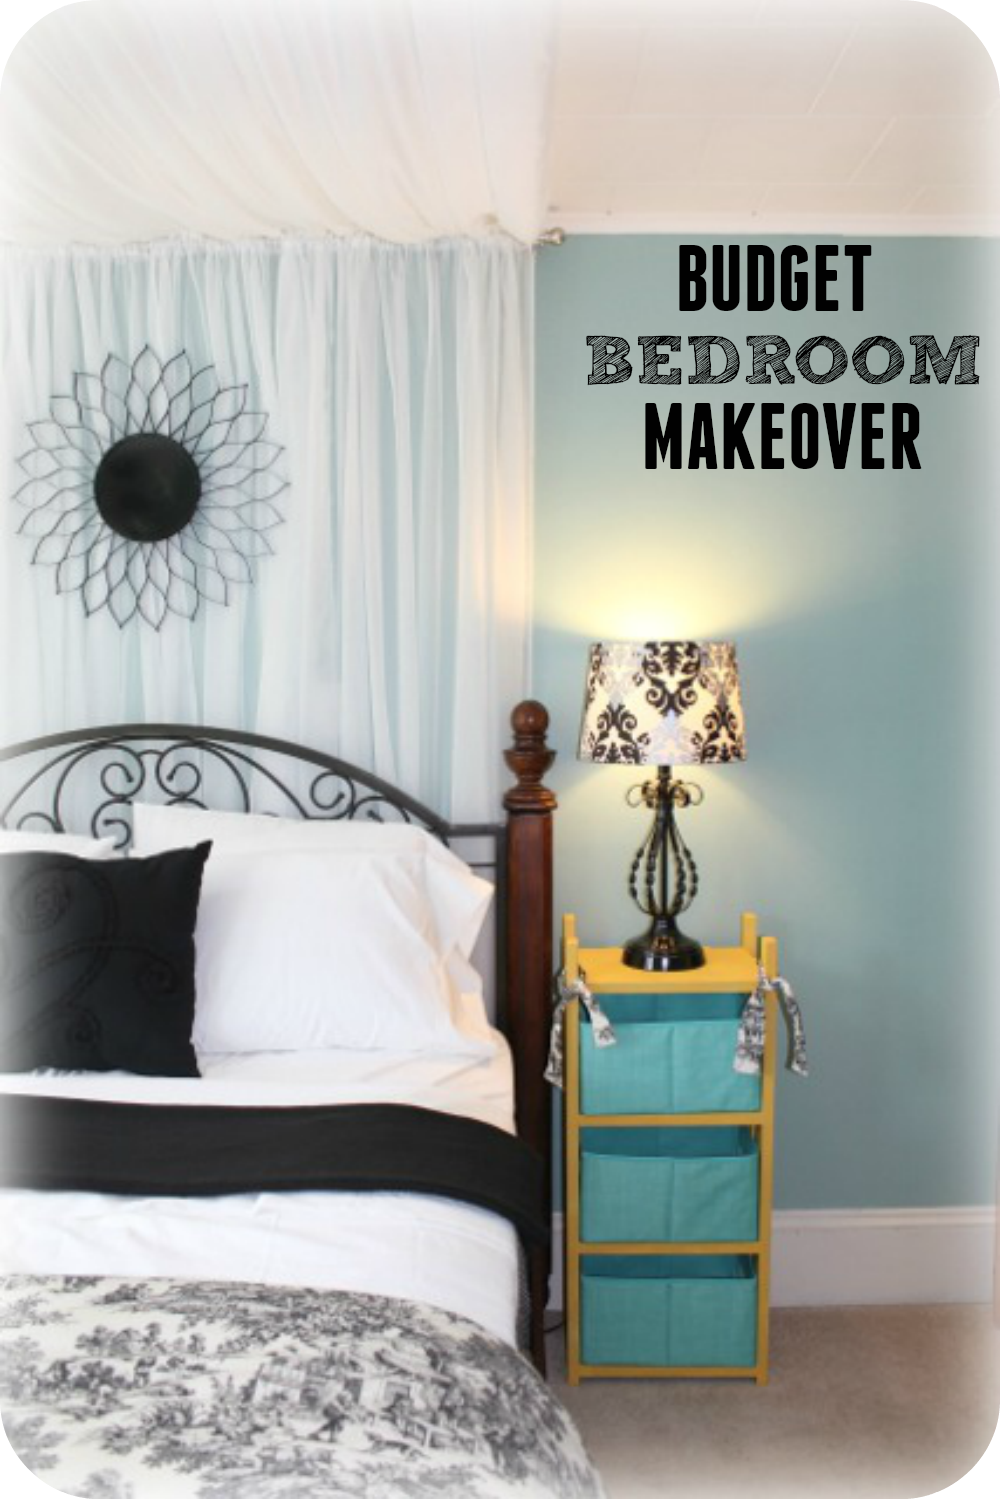 Budget bedroom ideas How to decorate your bedroom cheap